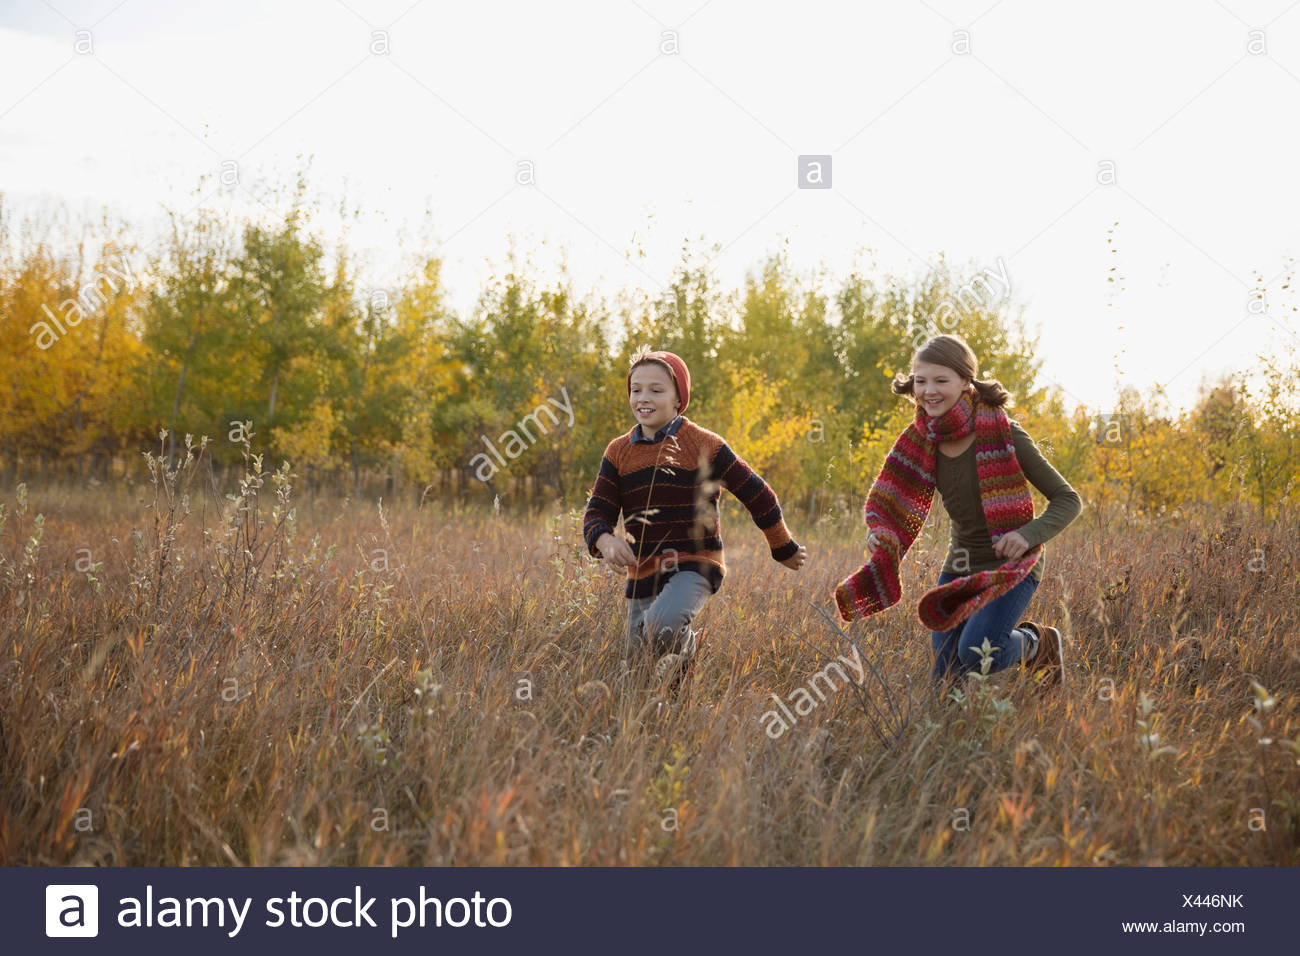 Brother and sister running in autumn field - Stock Image